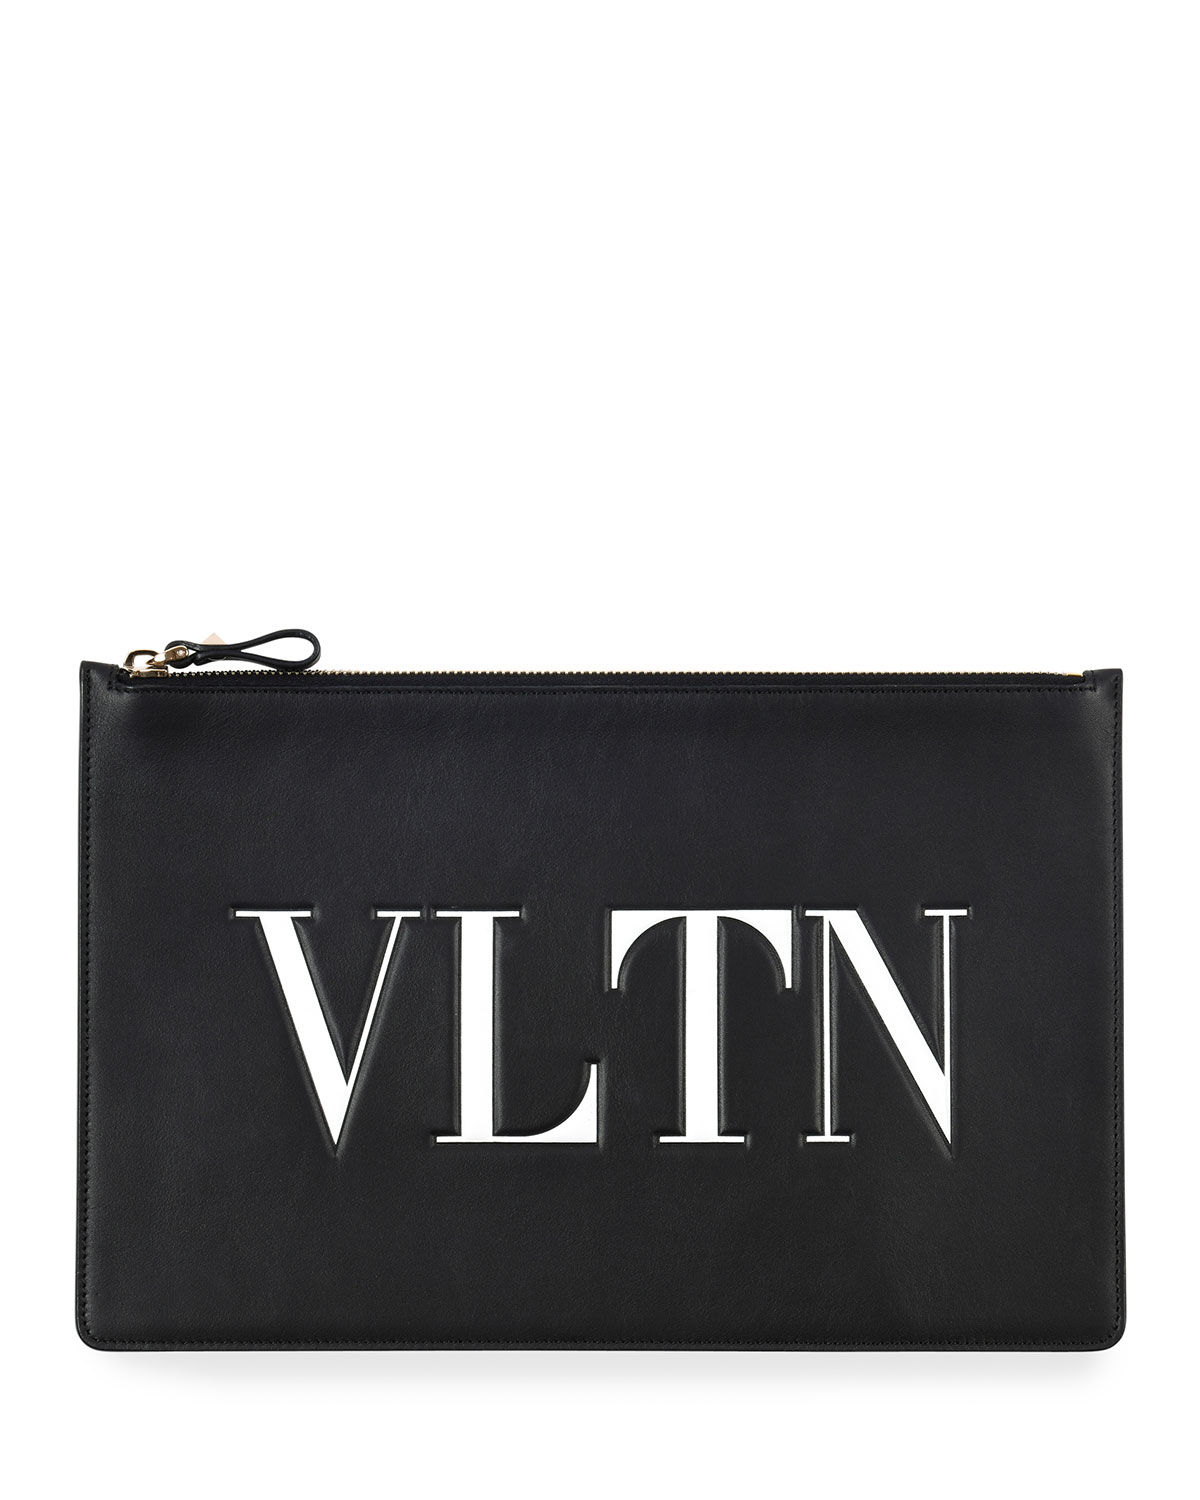 Vintage Child At Sunny Beach With Travel Suitcase Stock: Valentino Garavani VLTN Large Flat Pouch Clutch Bag